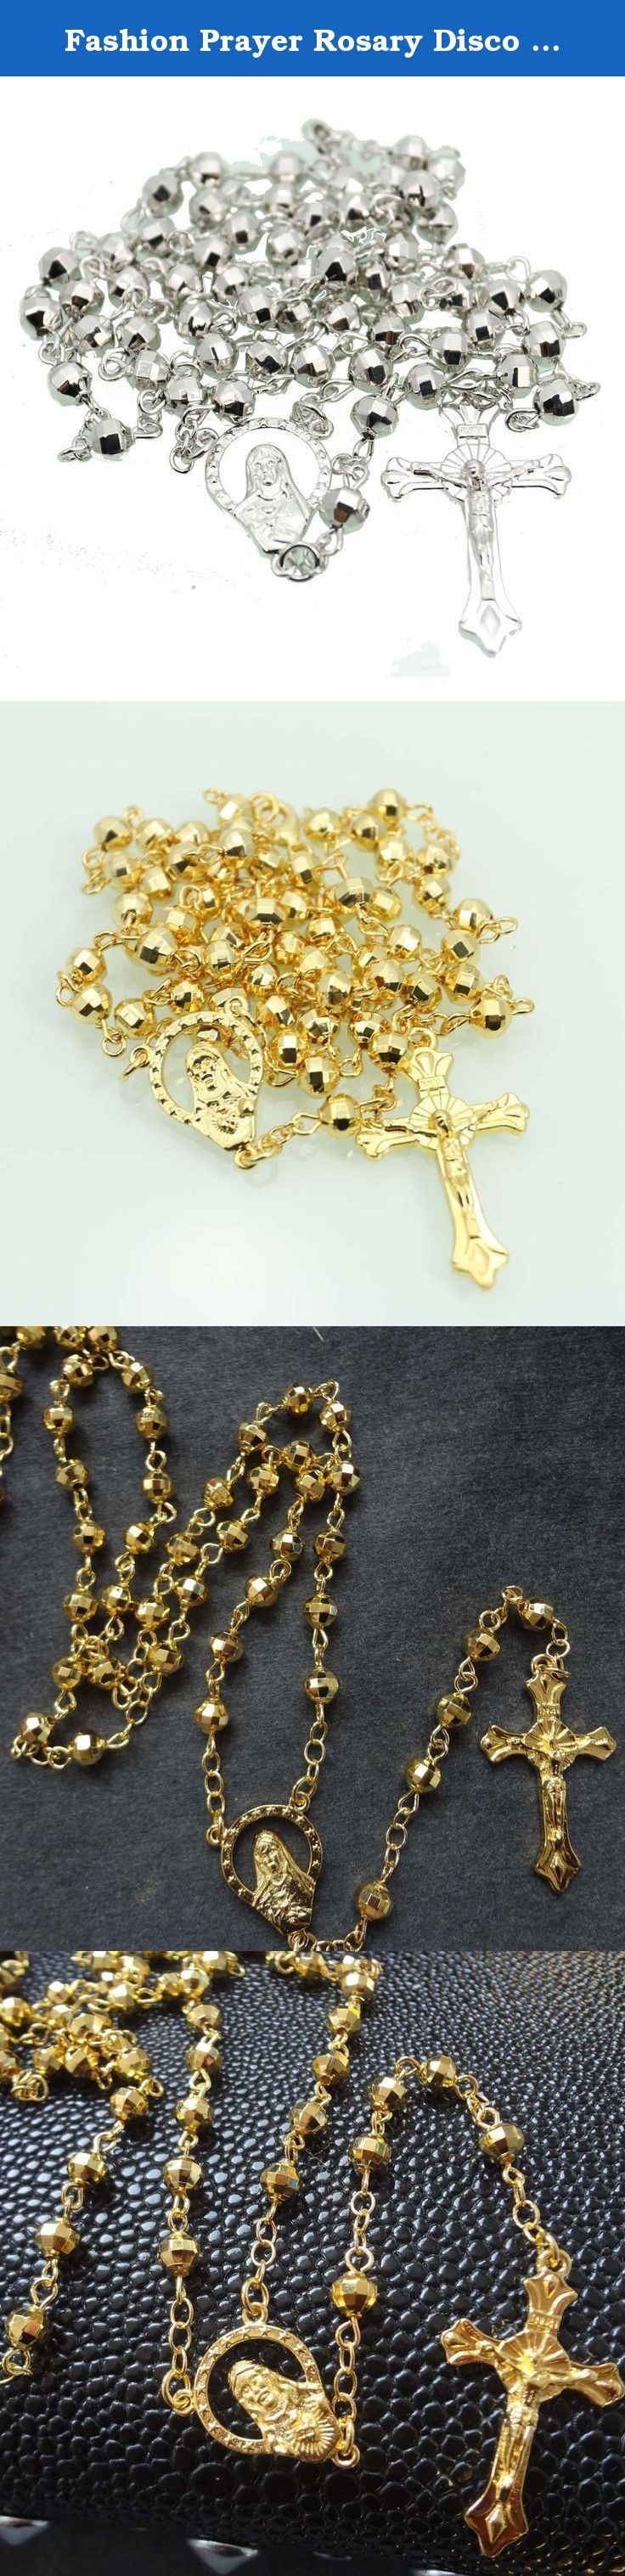 Fashion Prayer Rosary Disco Ball Beads Rosaries Gold Necklace for Men Cross (Silver). Fashion Prayer Rosary Disco Ball Beads Rosaries Gold Necklace for Men Cross product standard: 6MM Brass Ball Beads 59pcs rosary From losber to cross 16inch (40.64cm) Circle chain 12.5inch (75cm) Center to cross 5.5inch (14cm) Net: 30g.